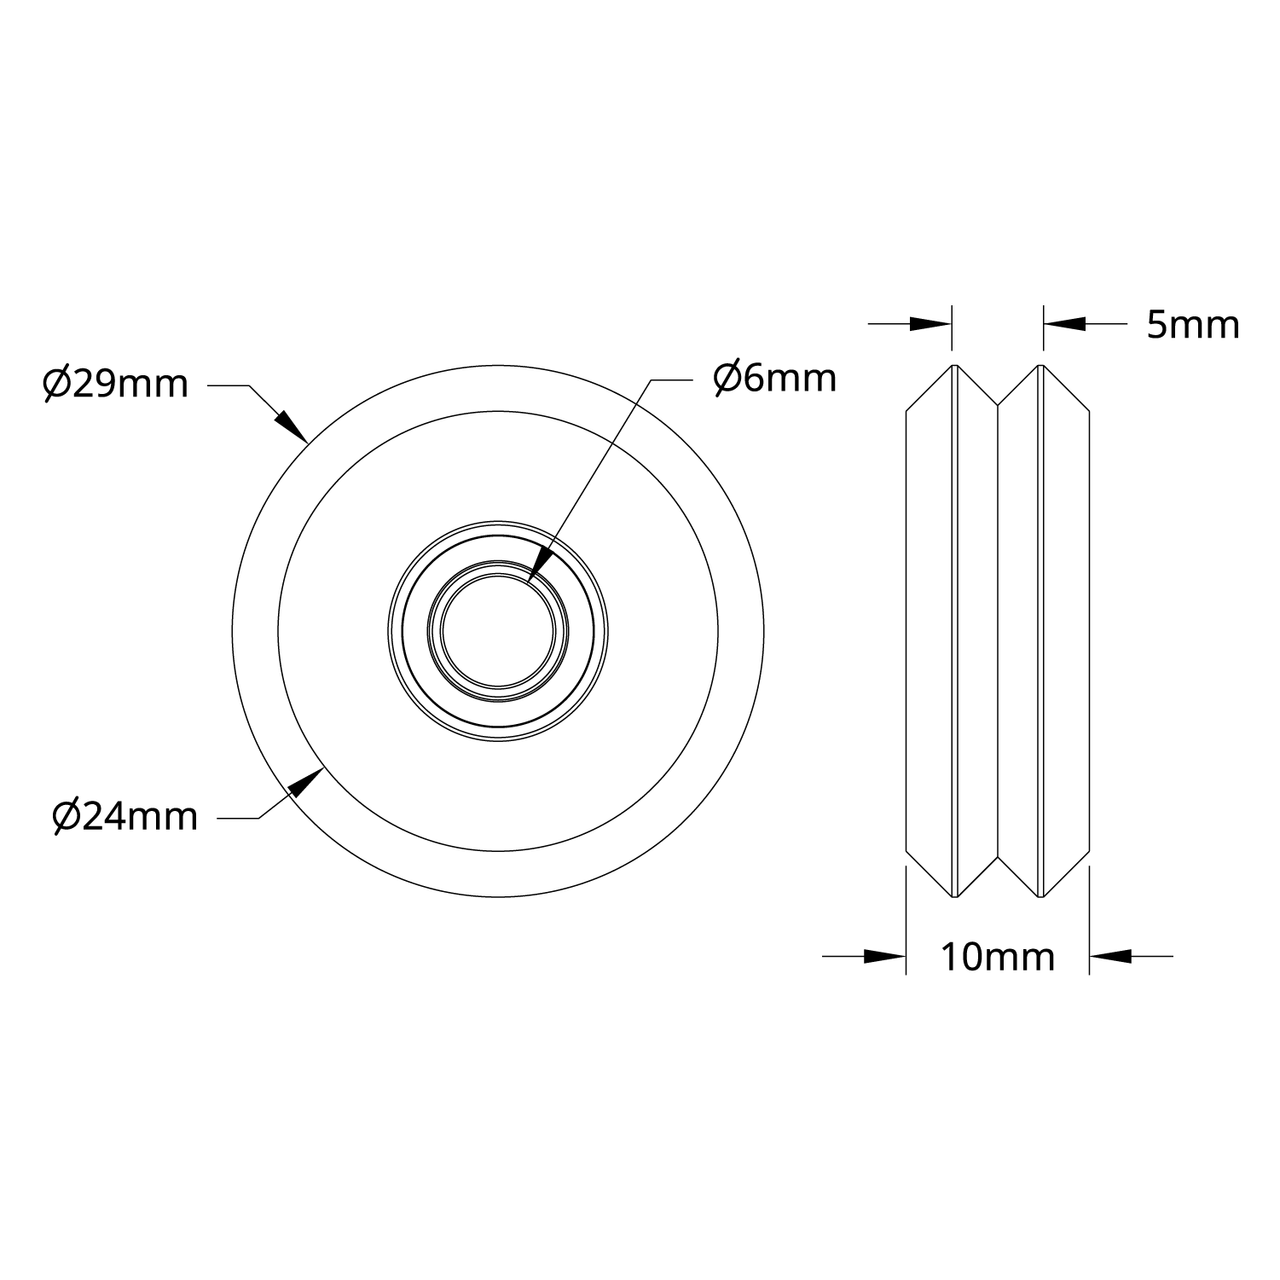 small resolution of  29mm 3600 0006 2910 schematic